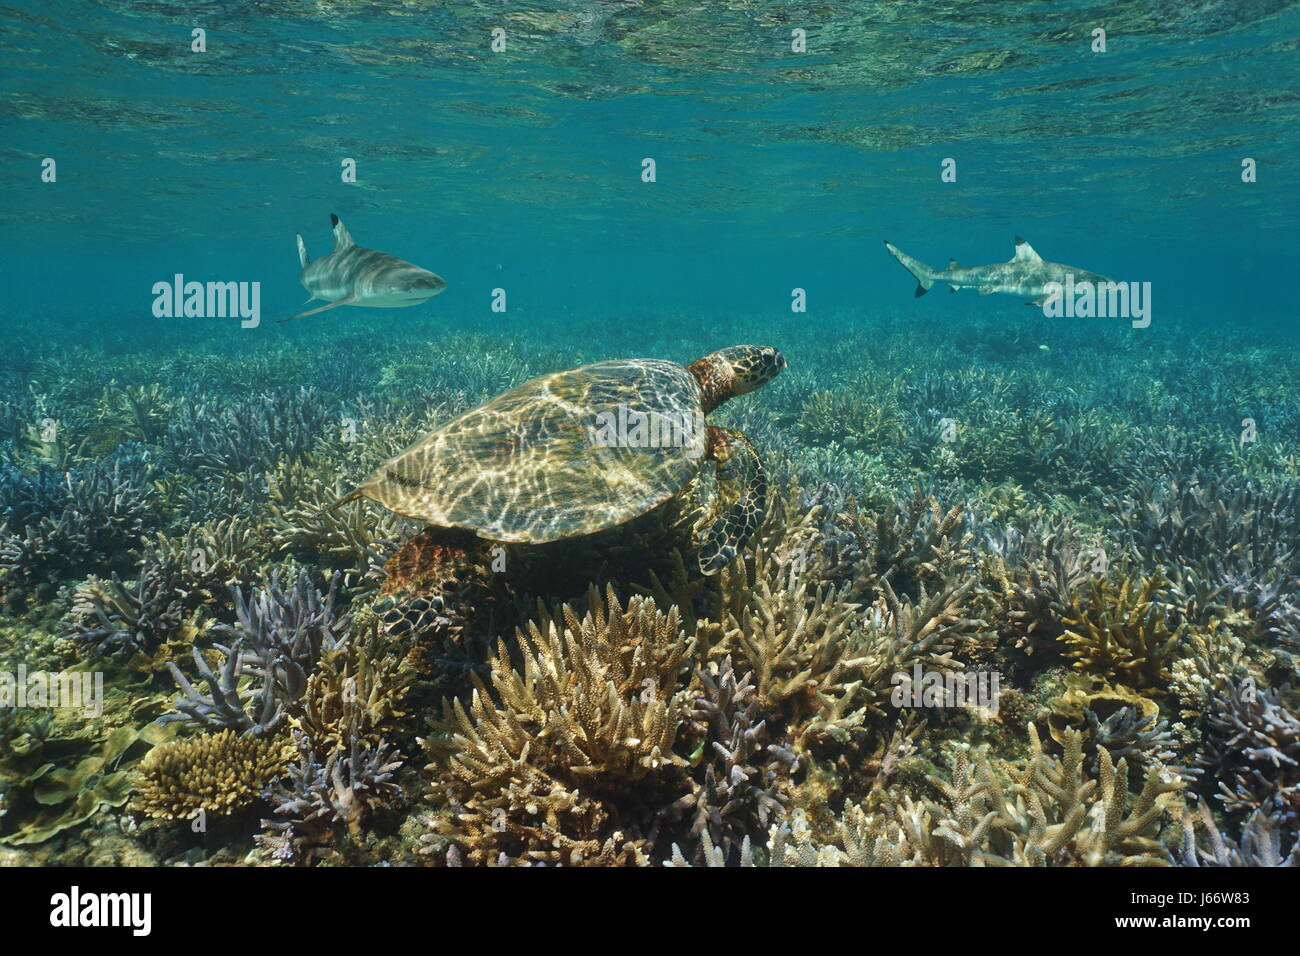 Shallow coral reef underwater with an hawksbill sea turtle and blacktip reef sharks, south Pacific ocean, New Caledonia - Stock Image